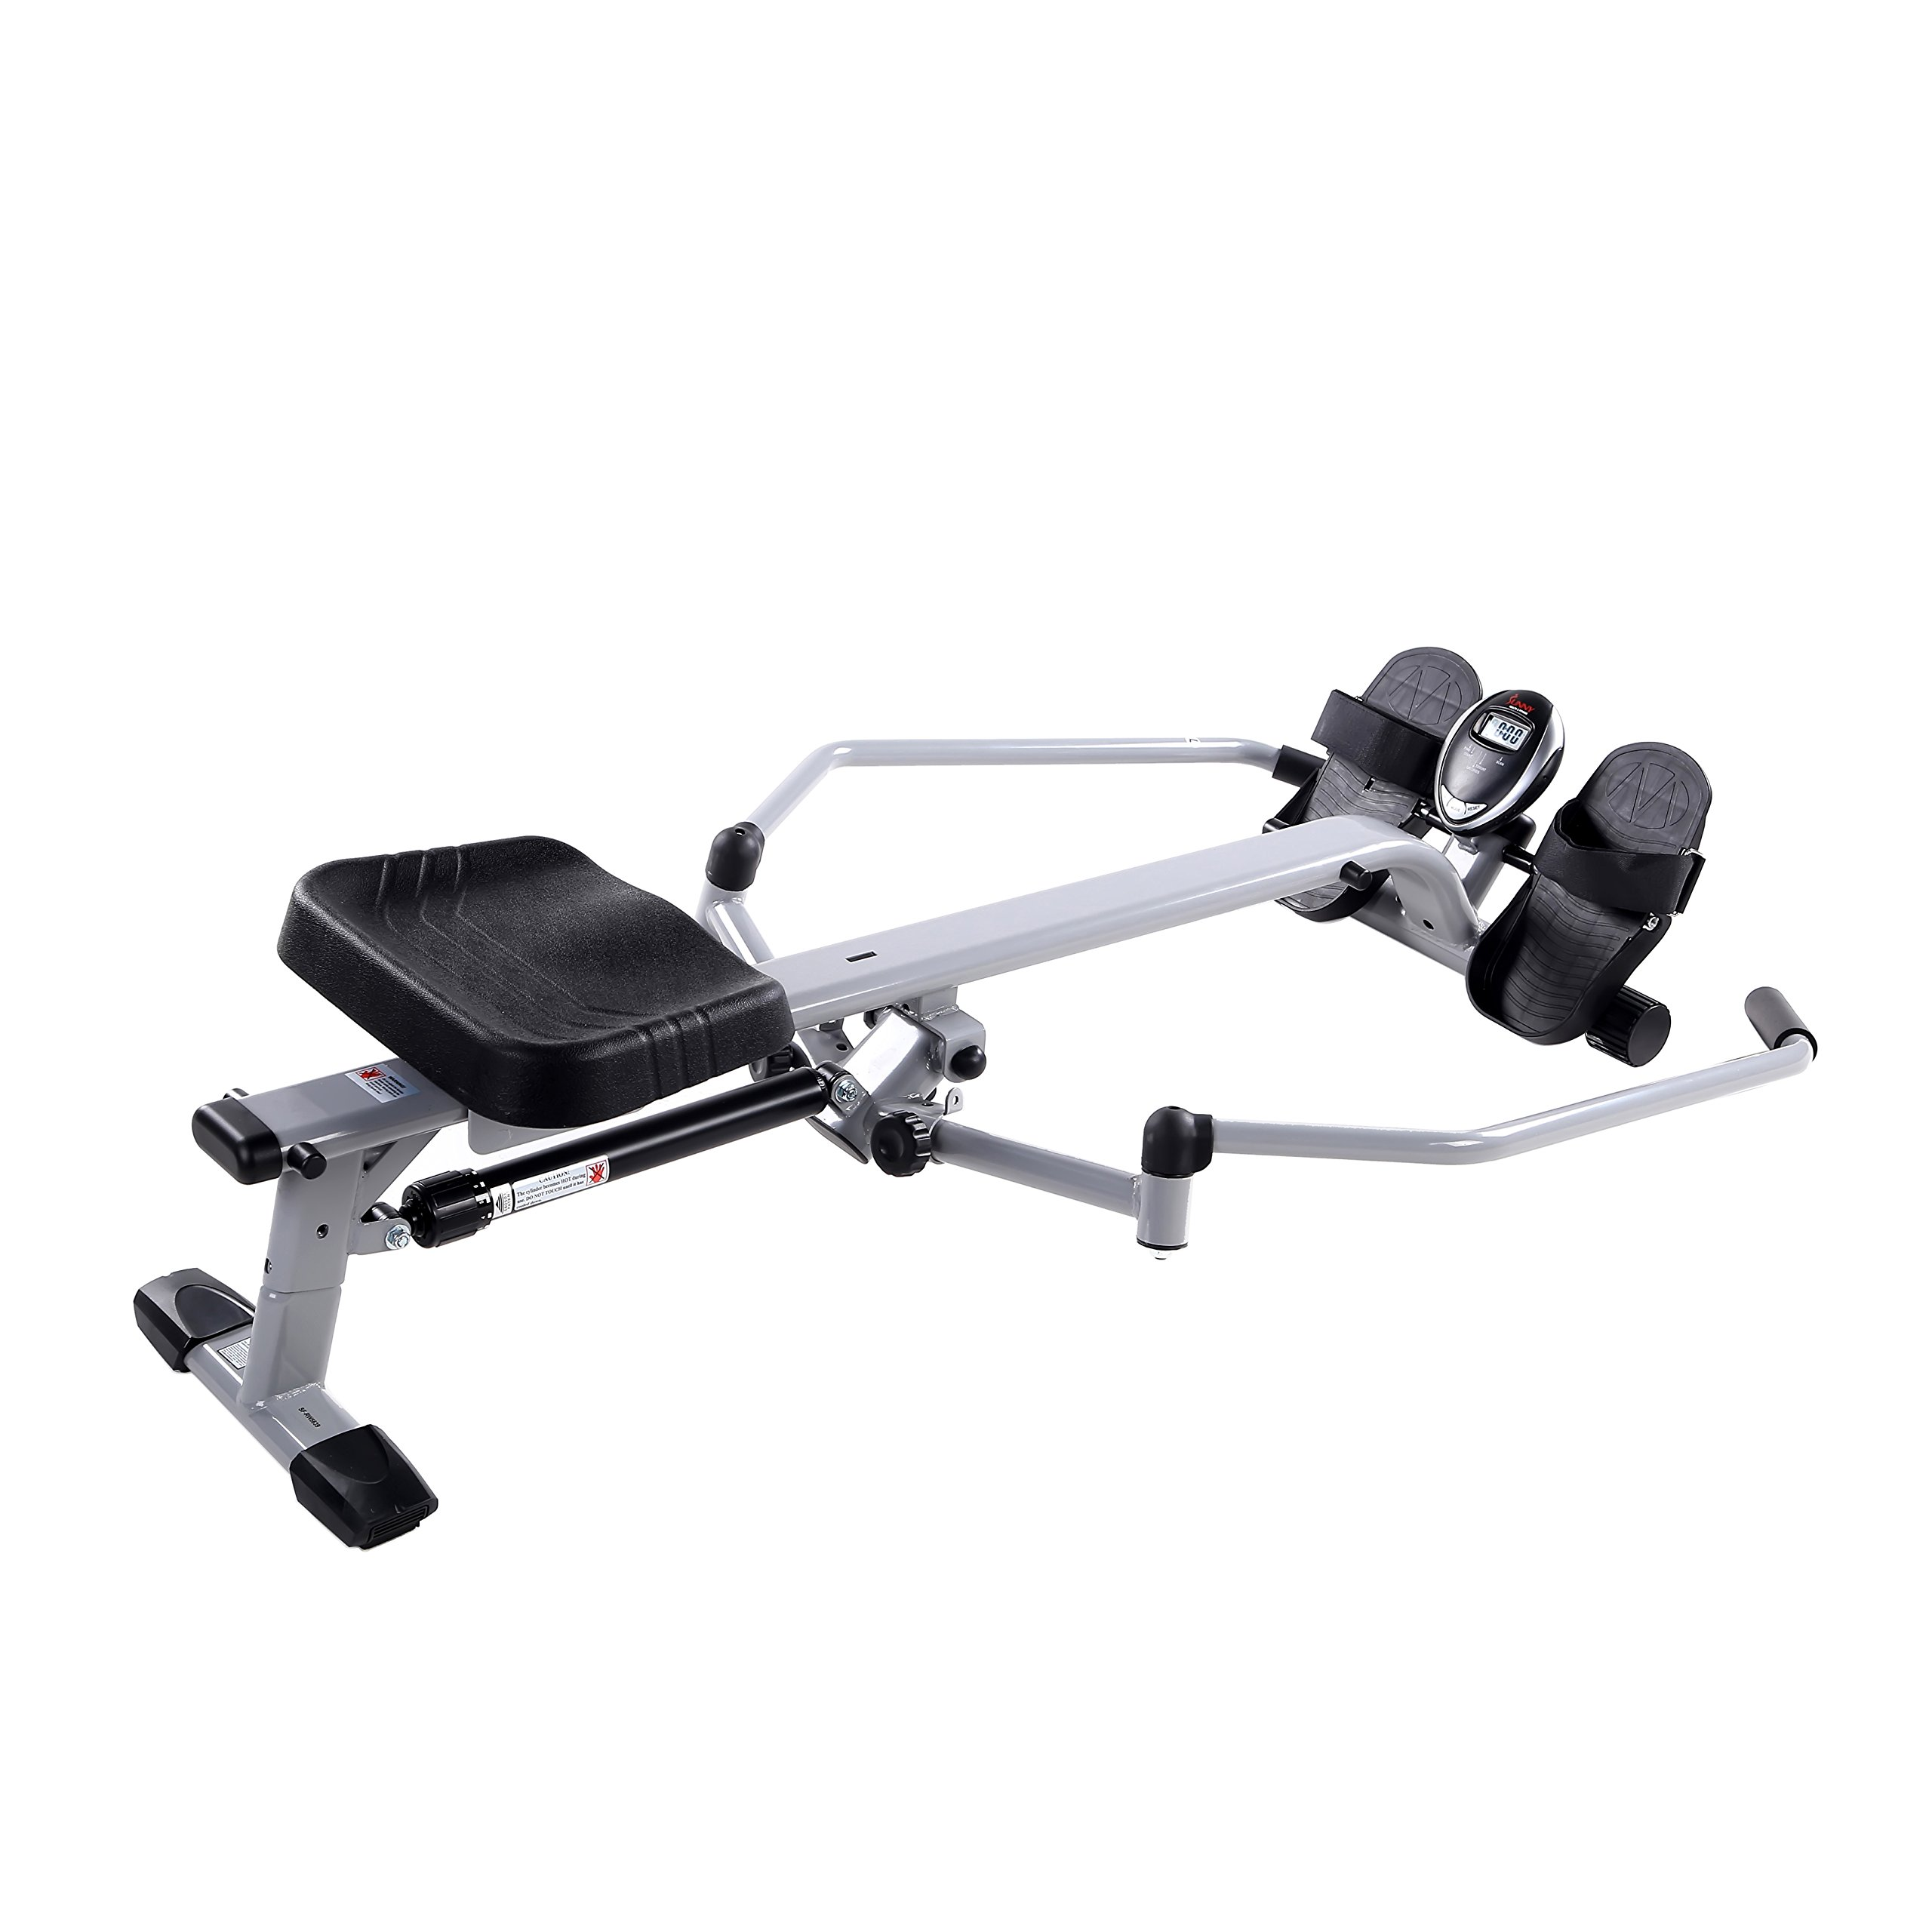 Sunny Health & Fitness SF-RW5639 Full Motion Rowing Machine Rower w/ 350 lb Weight Capacity and LCD Monitor by Sunny Health & Fitness (Image #2)